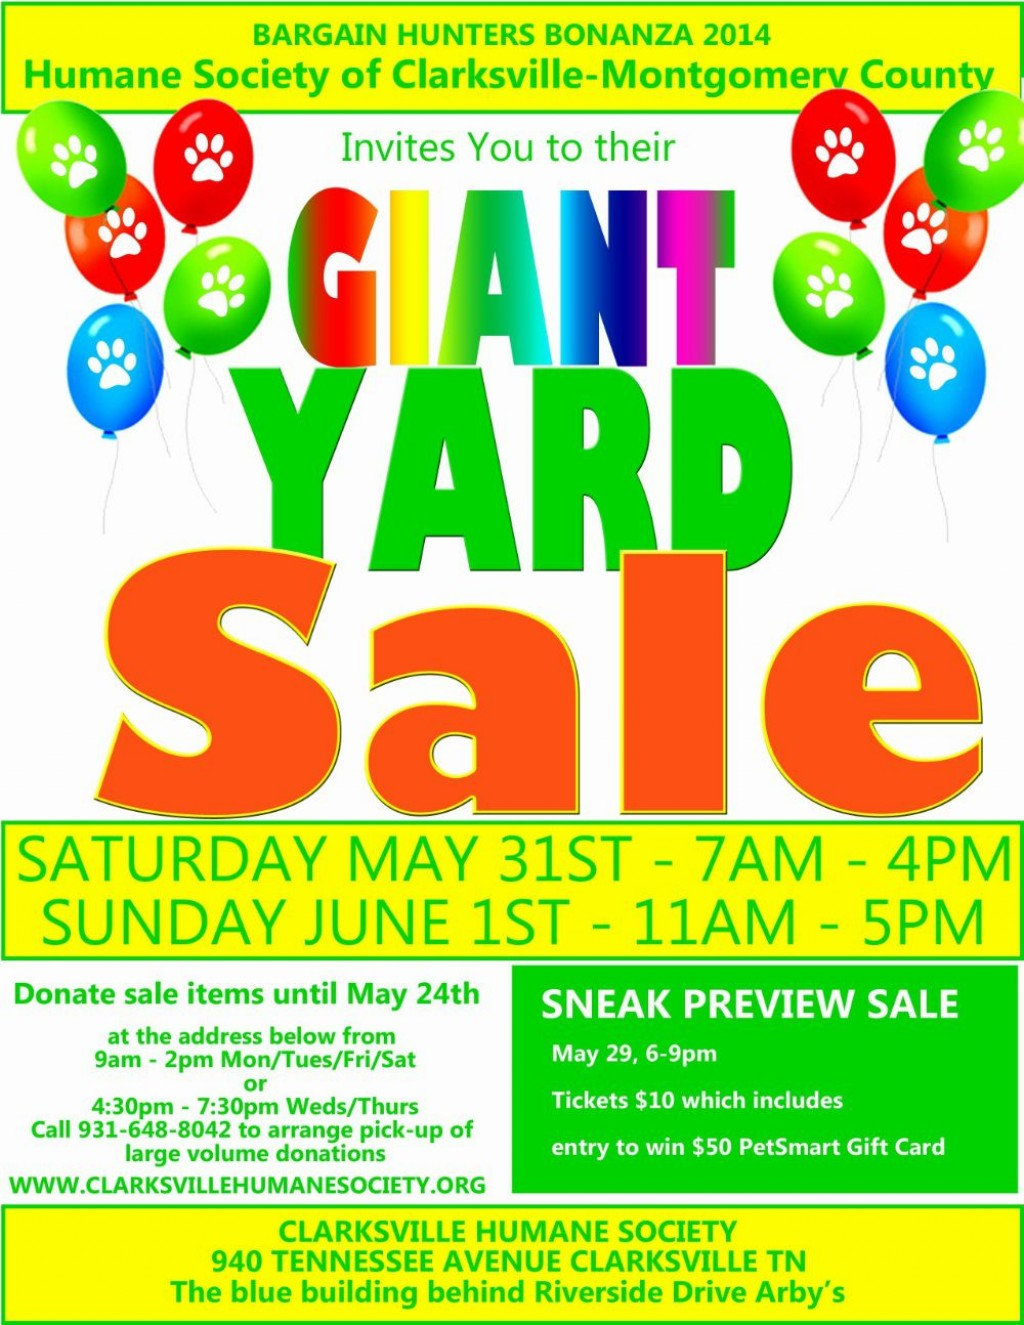 003 Sensational Yard Sale Flyer Template Example  Free Garage Microsoft WordLarge